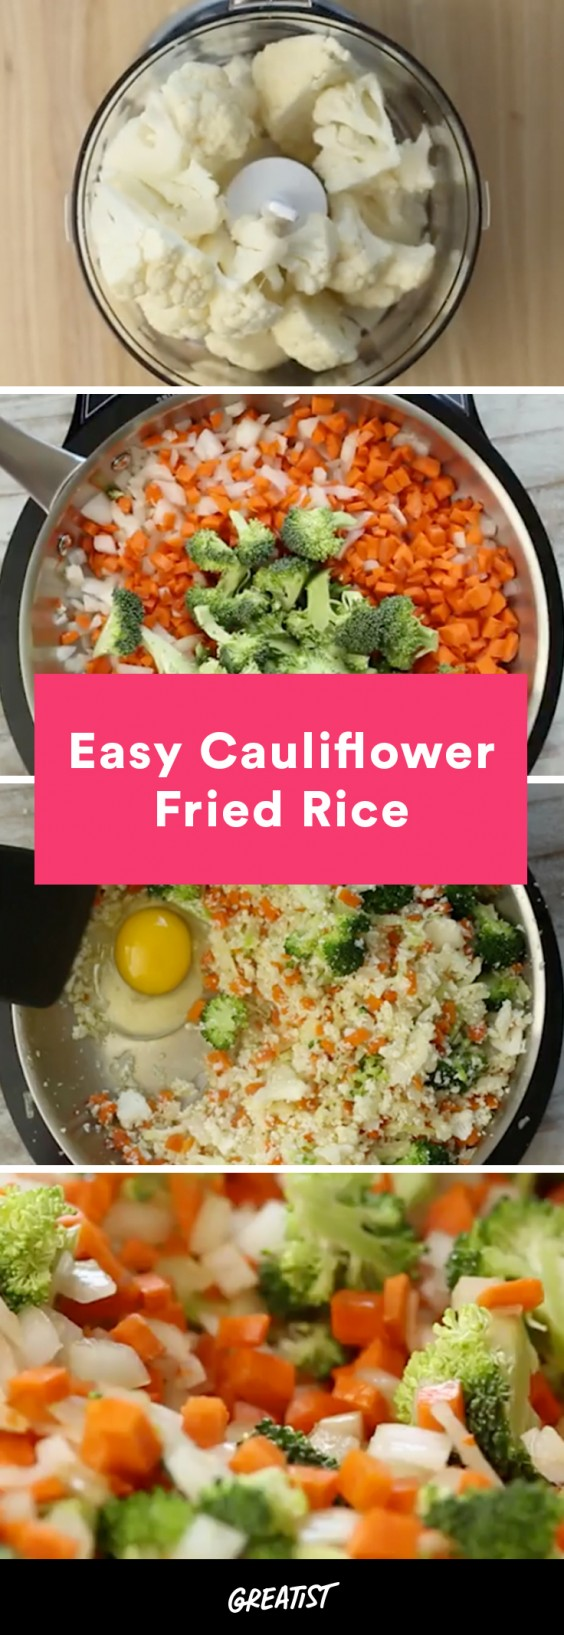 video: cauliflower fried rice